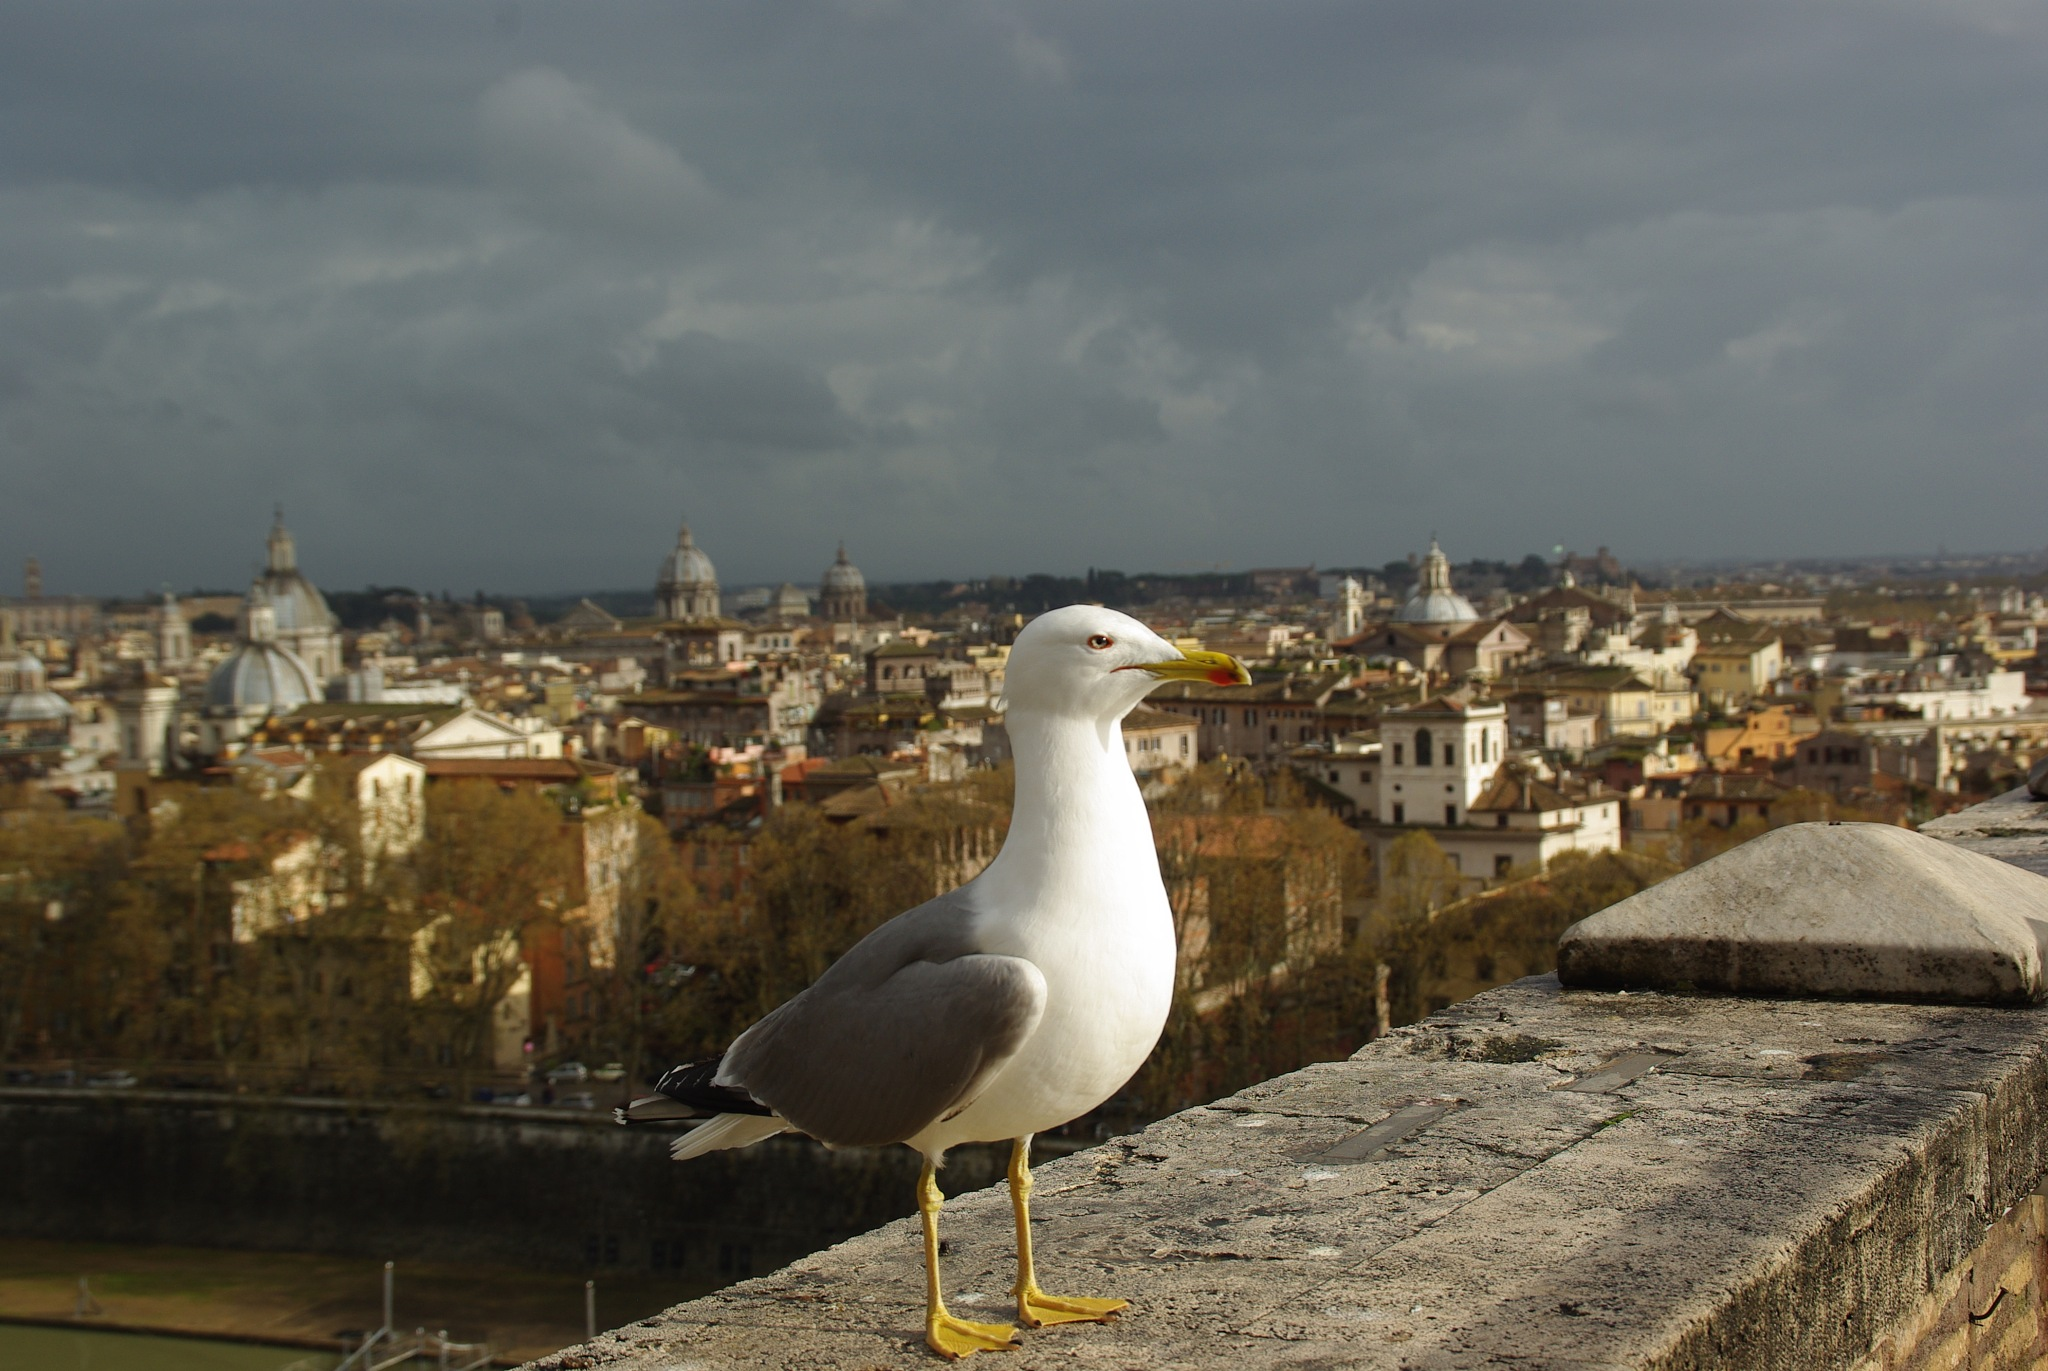 Roma Heads by Carlos Palleres Solis